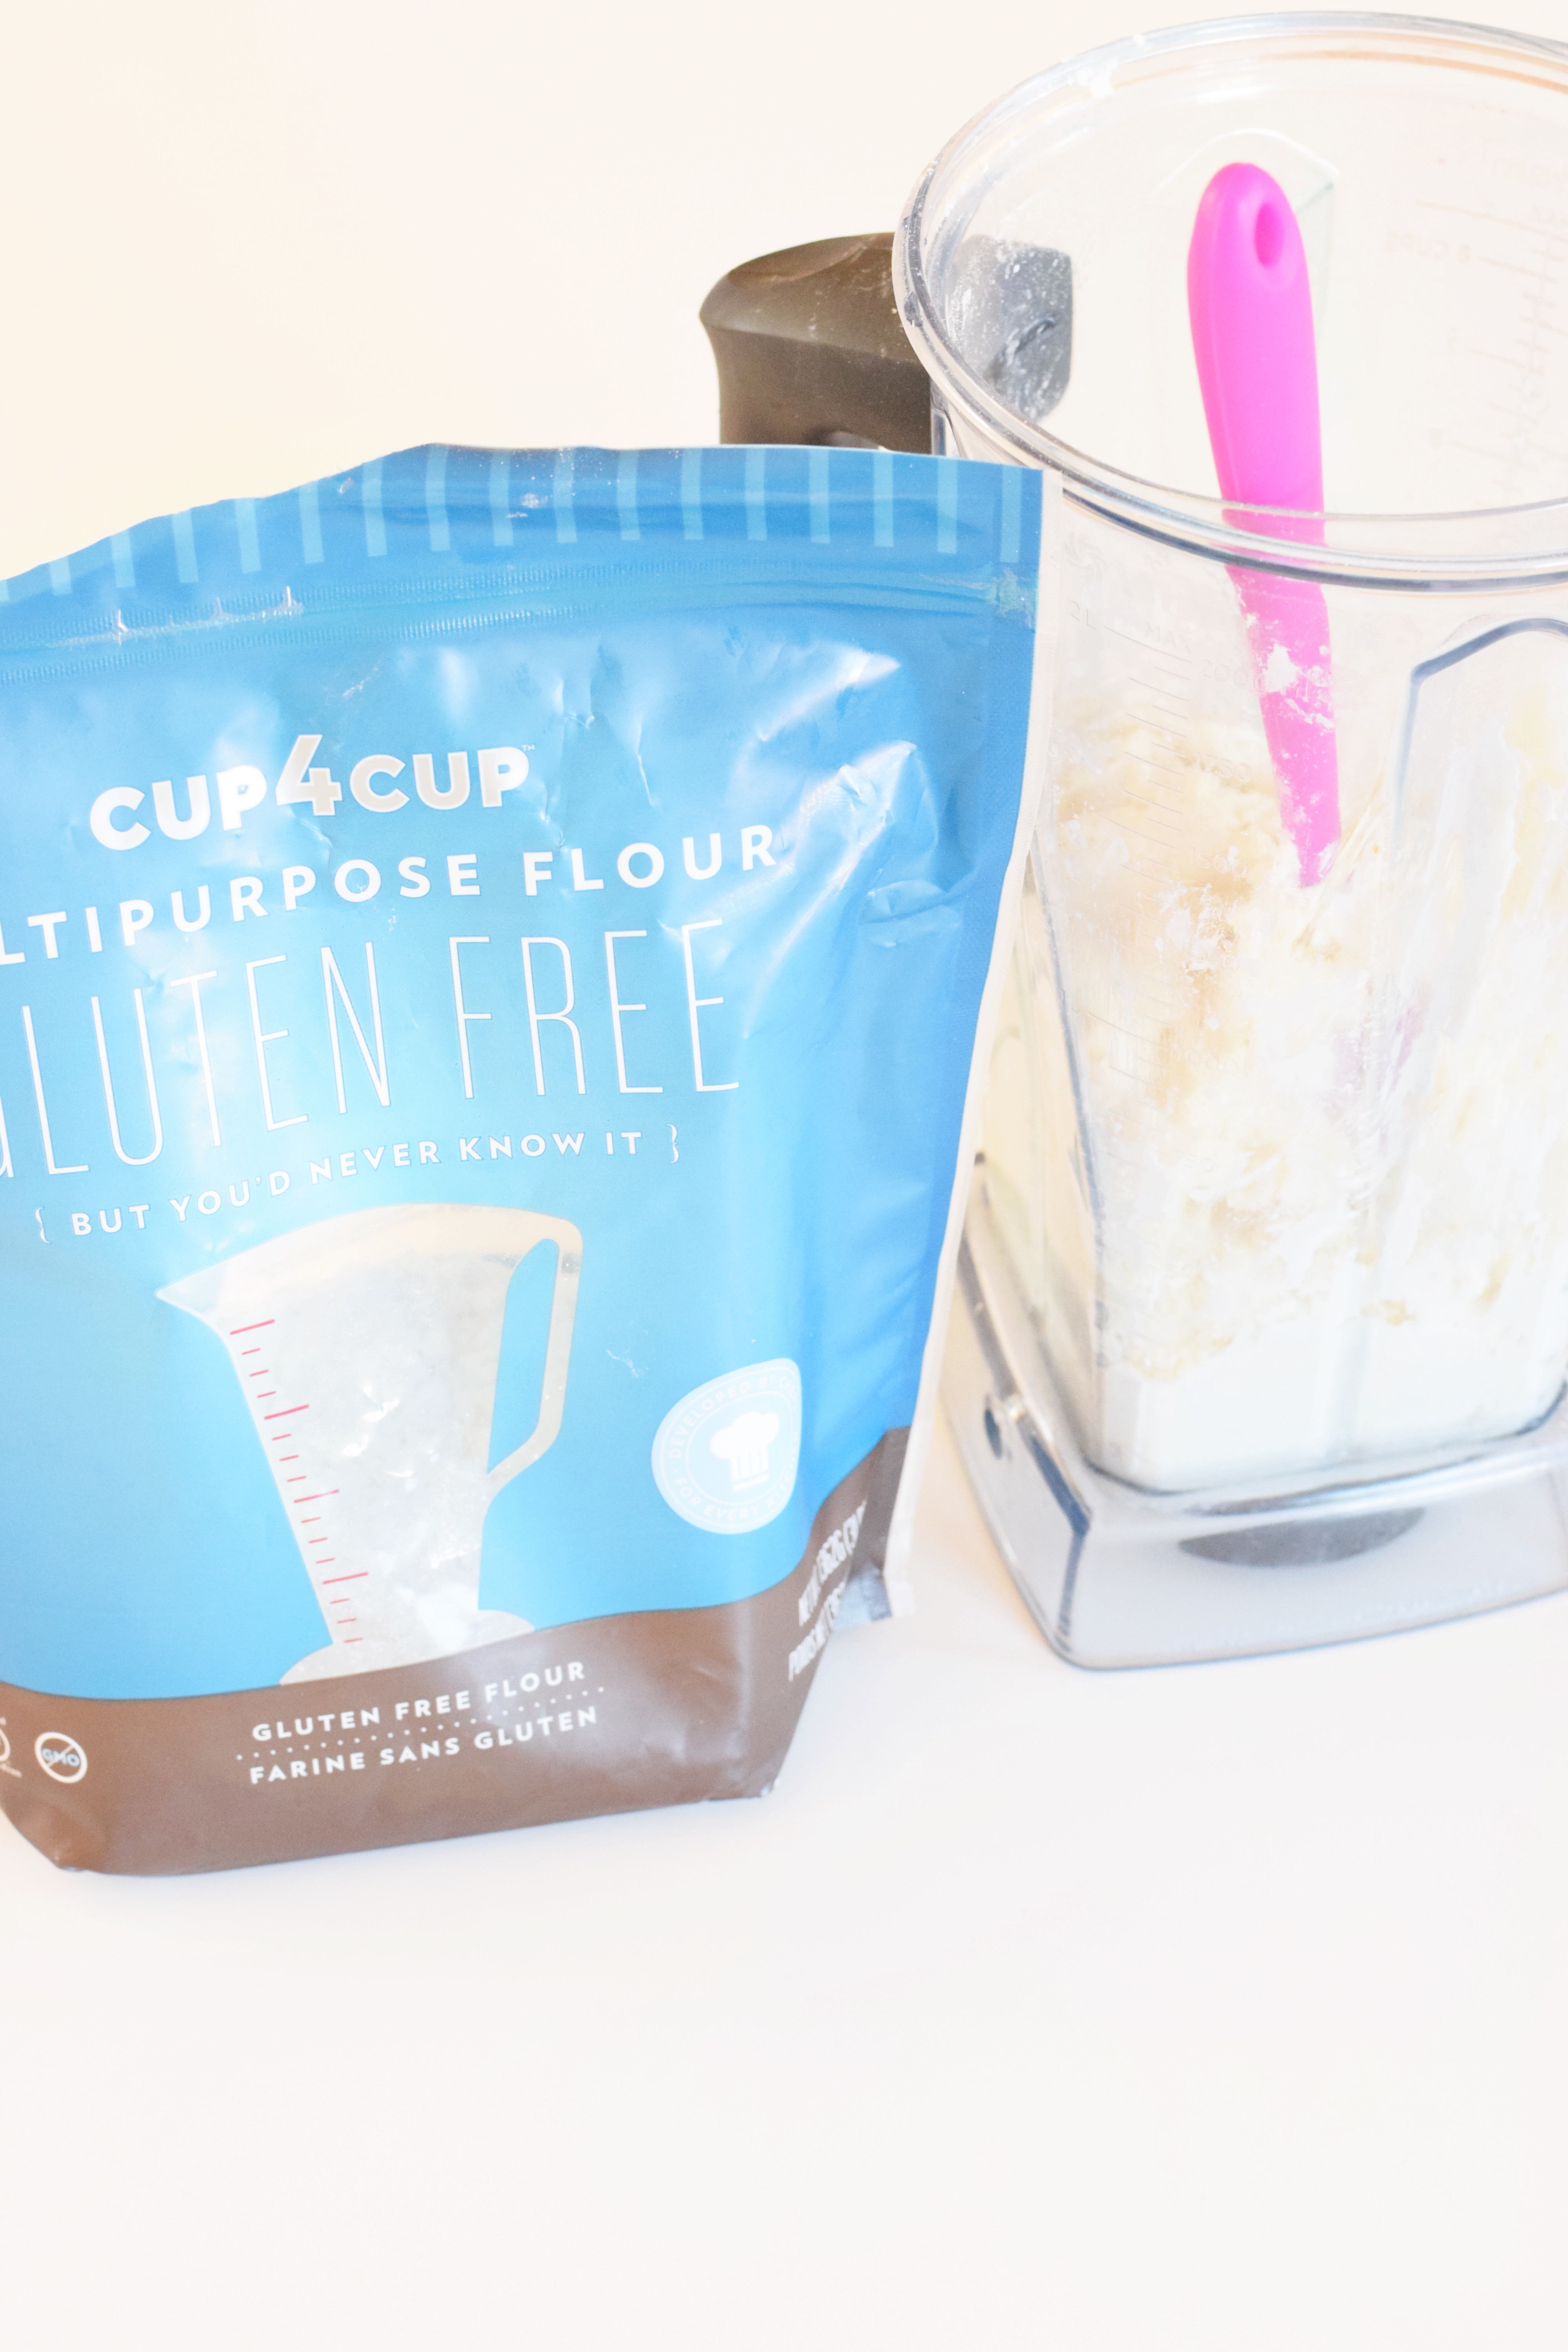 Vitamix and Cup4Cup Flour